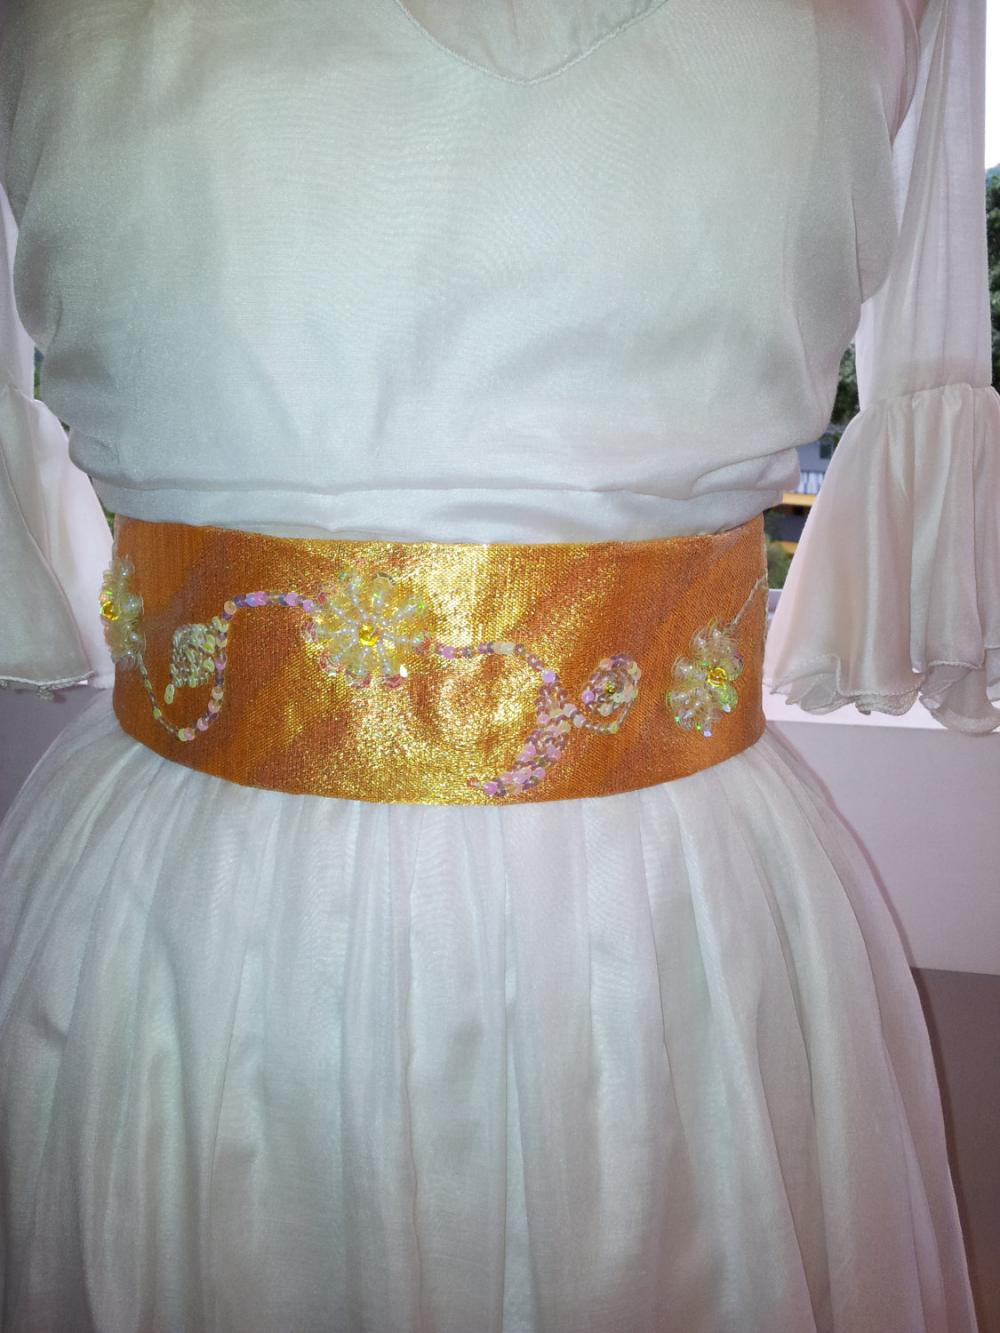 Gold Sash - Marie Antoinette Inspired with White Sequin Flowers